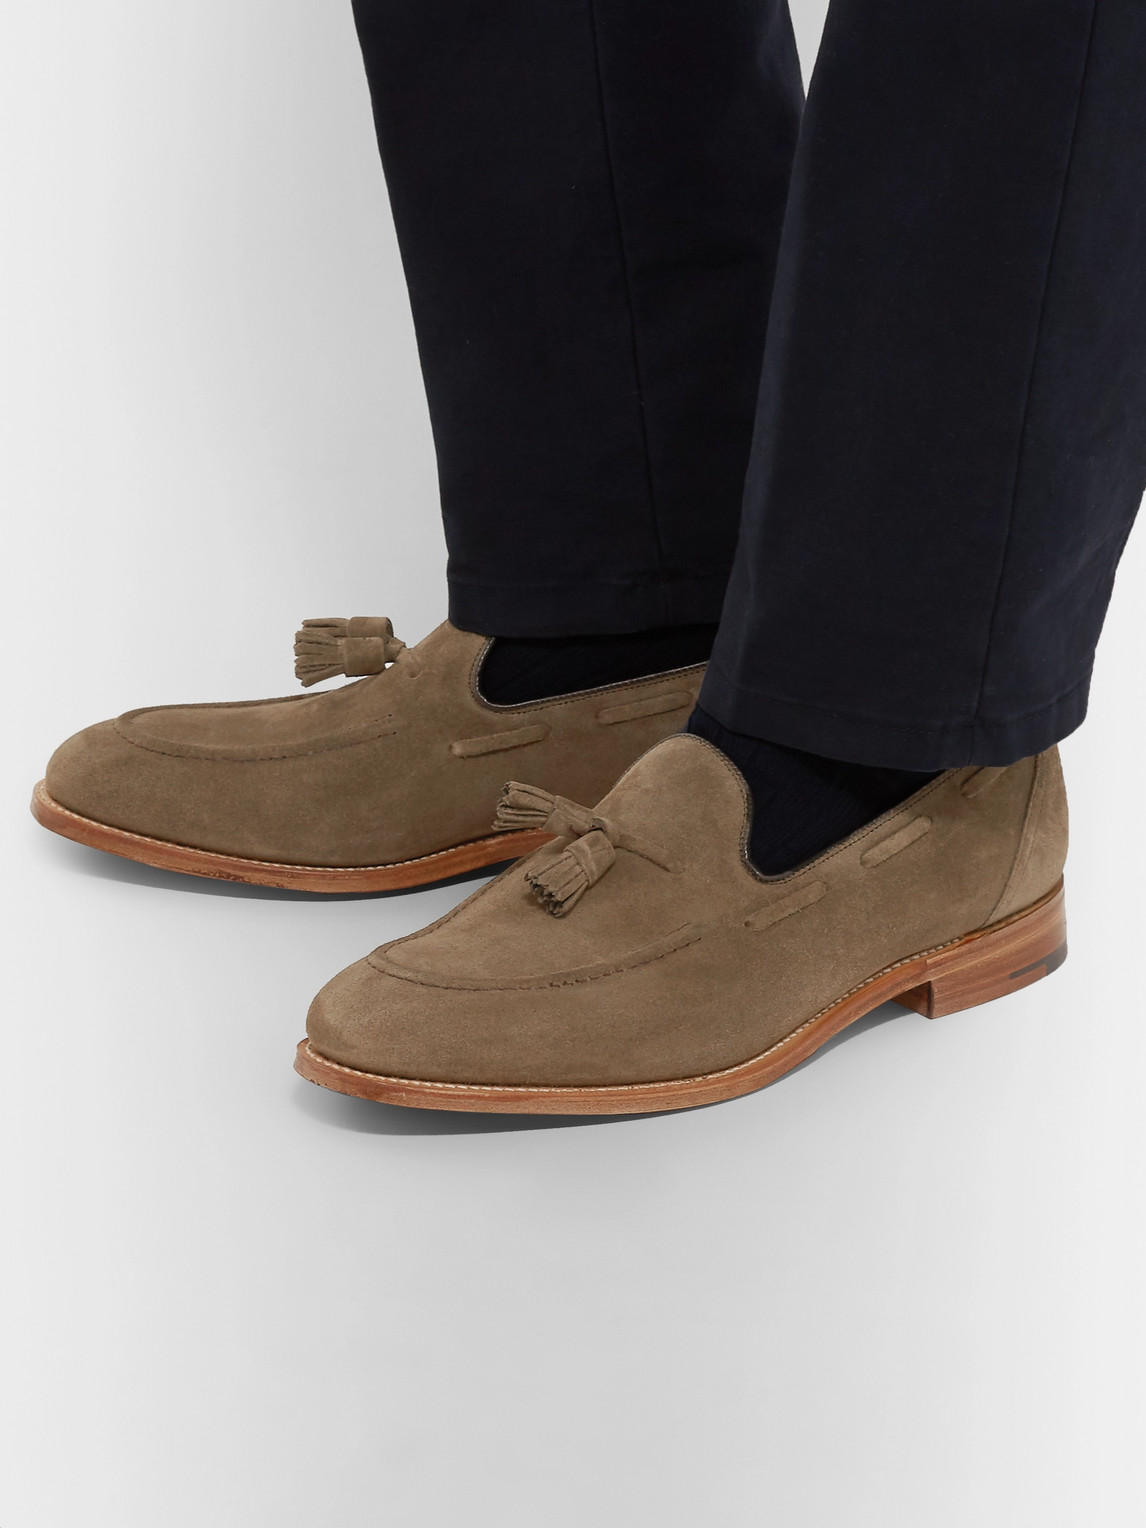 Church's Loafers KINGSLEY 2 SUEDE TASSELLED LOAFERS